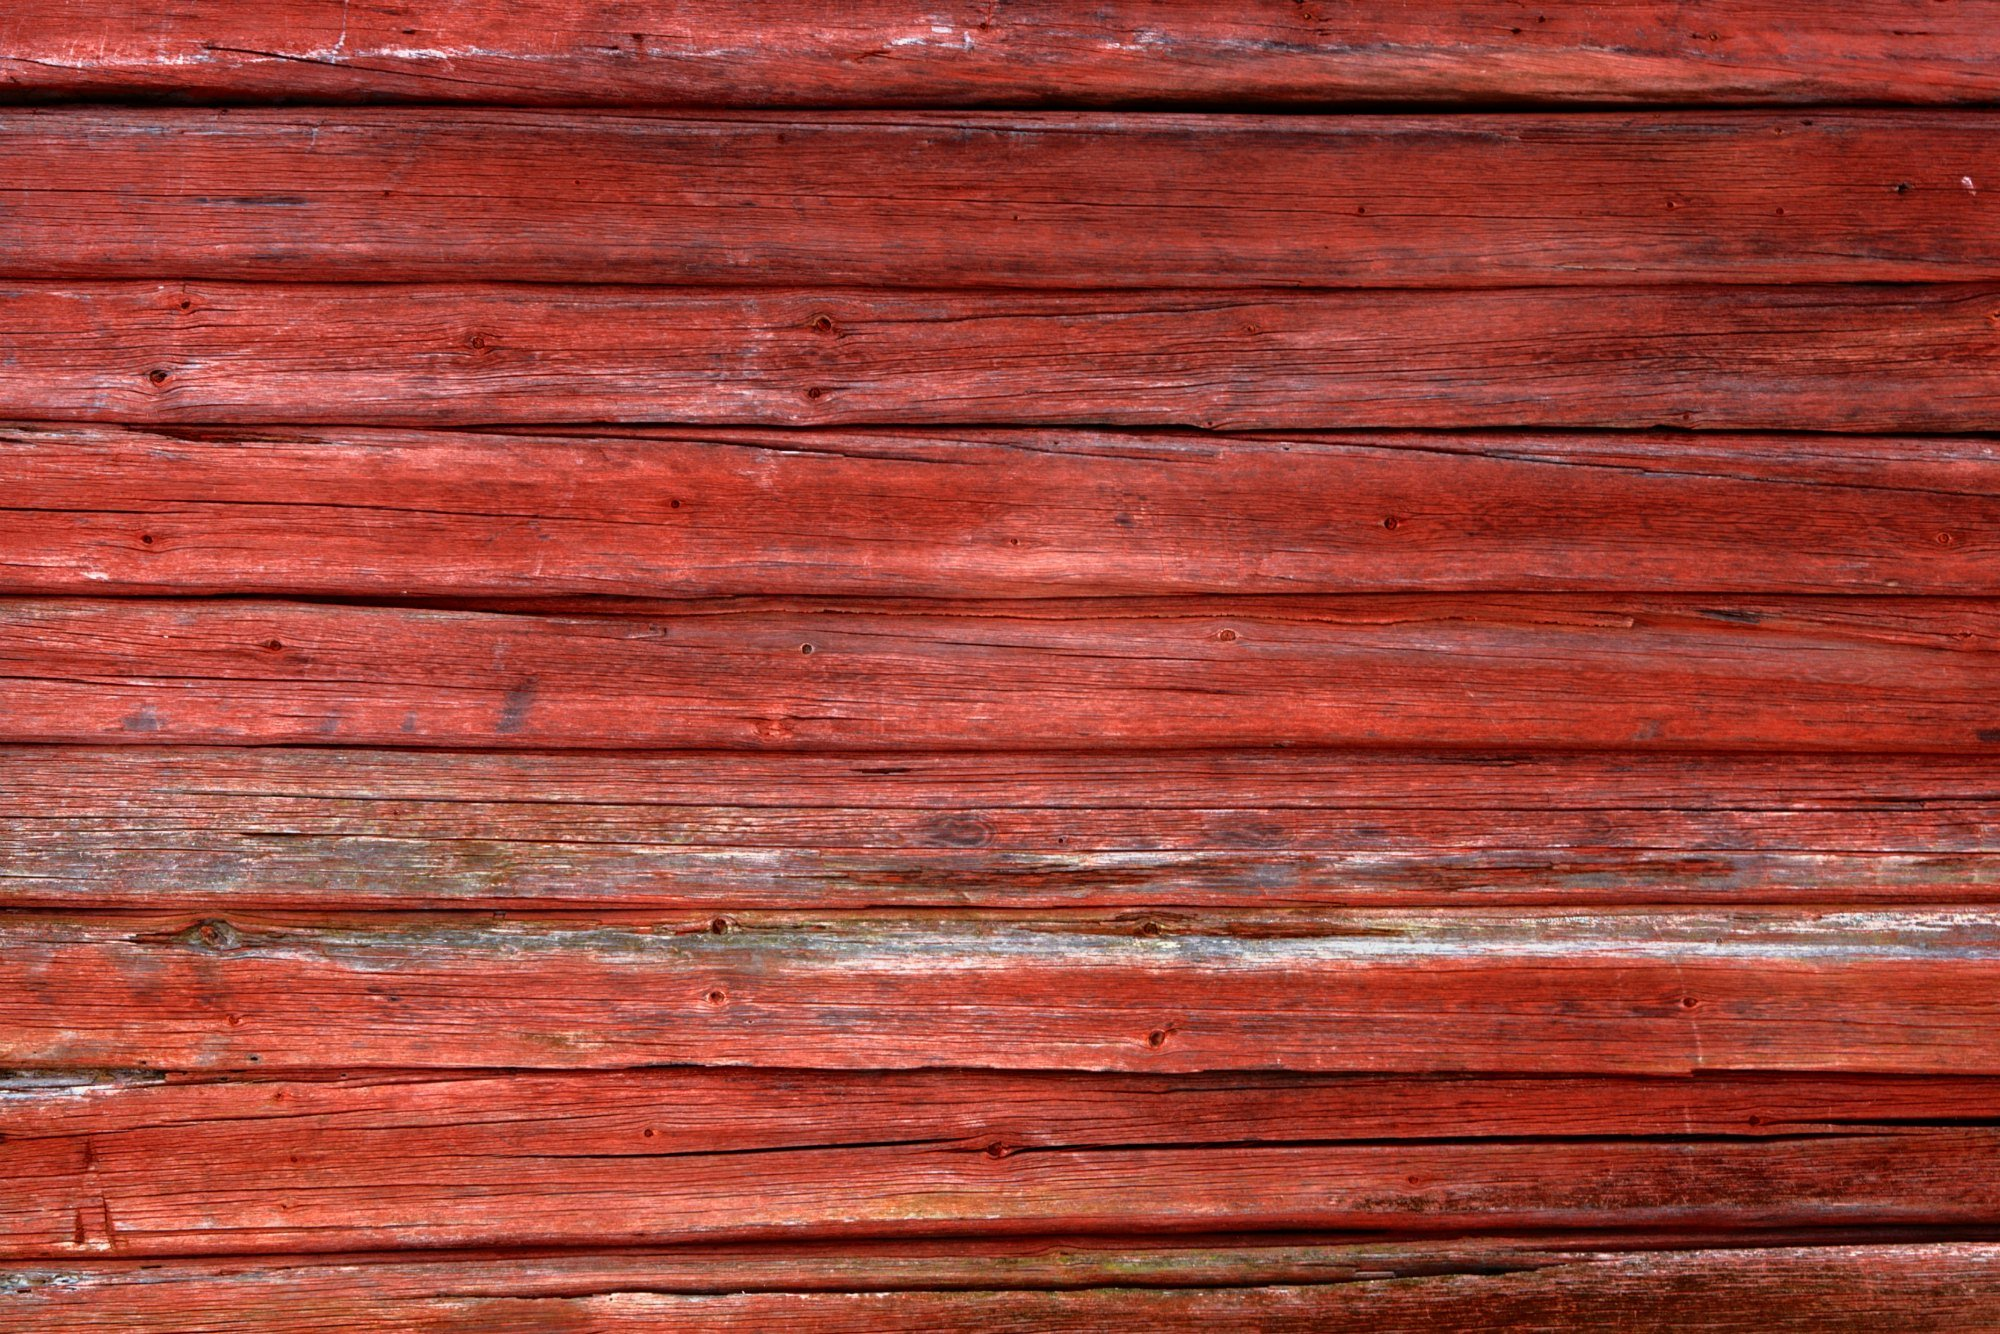 Red barn wood wallpaper wallpapersafari